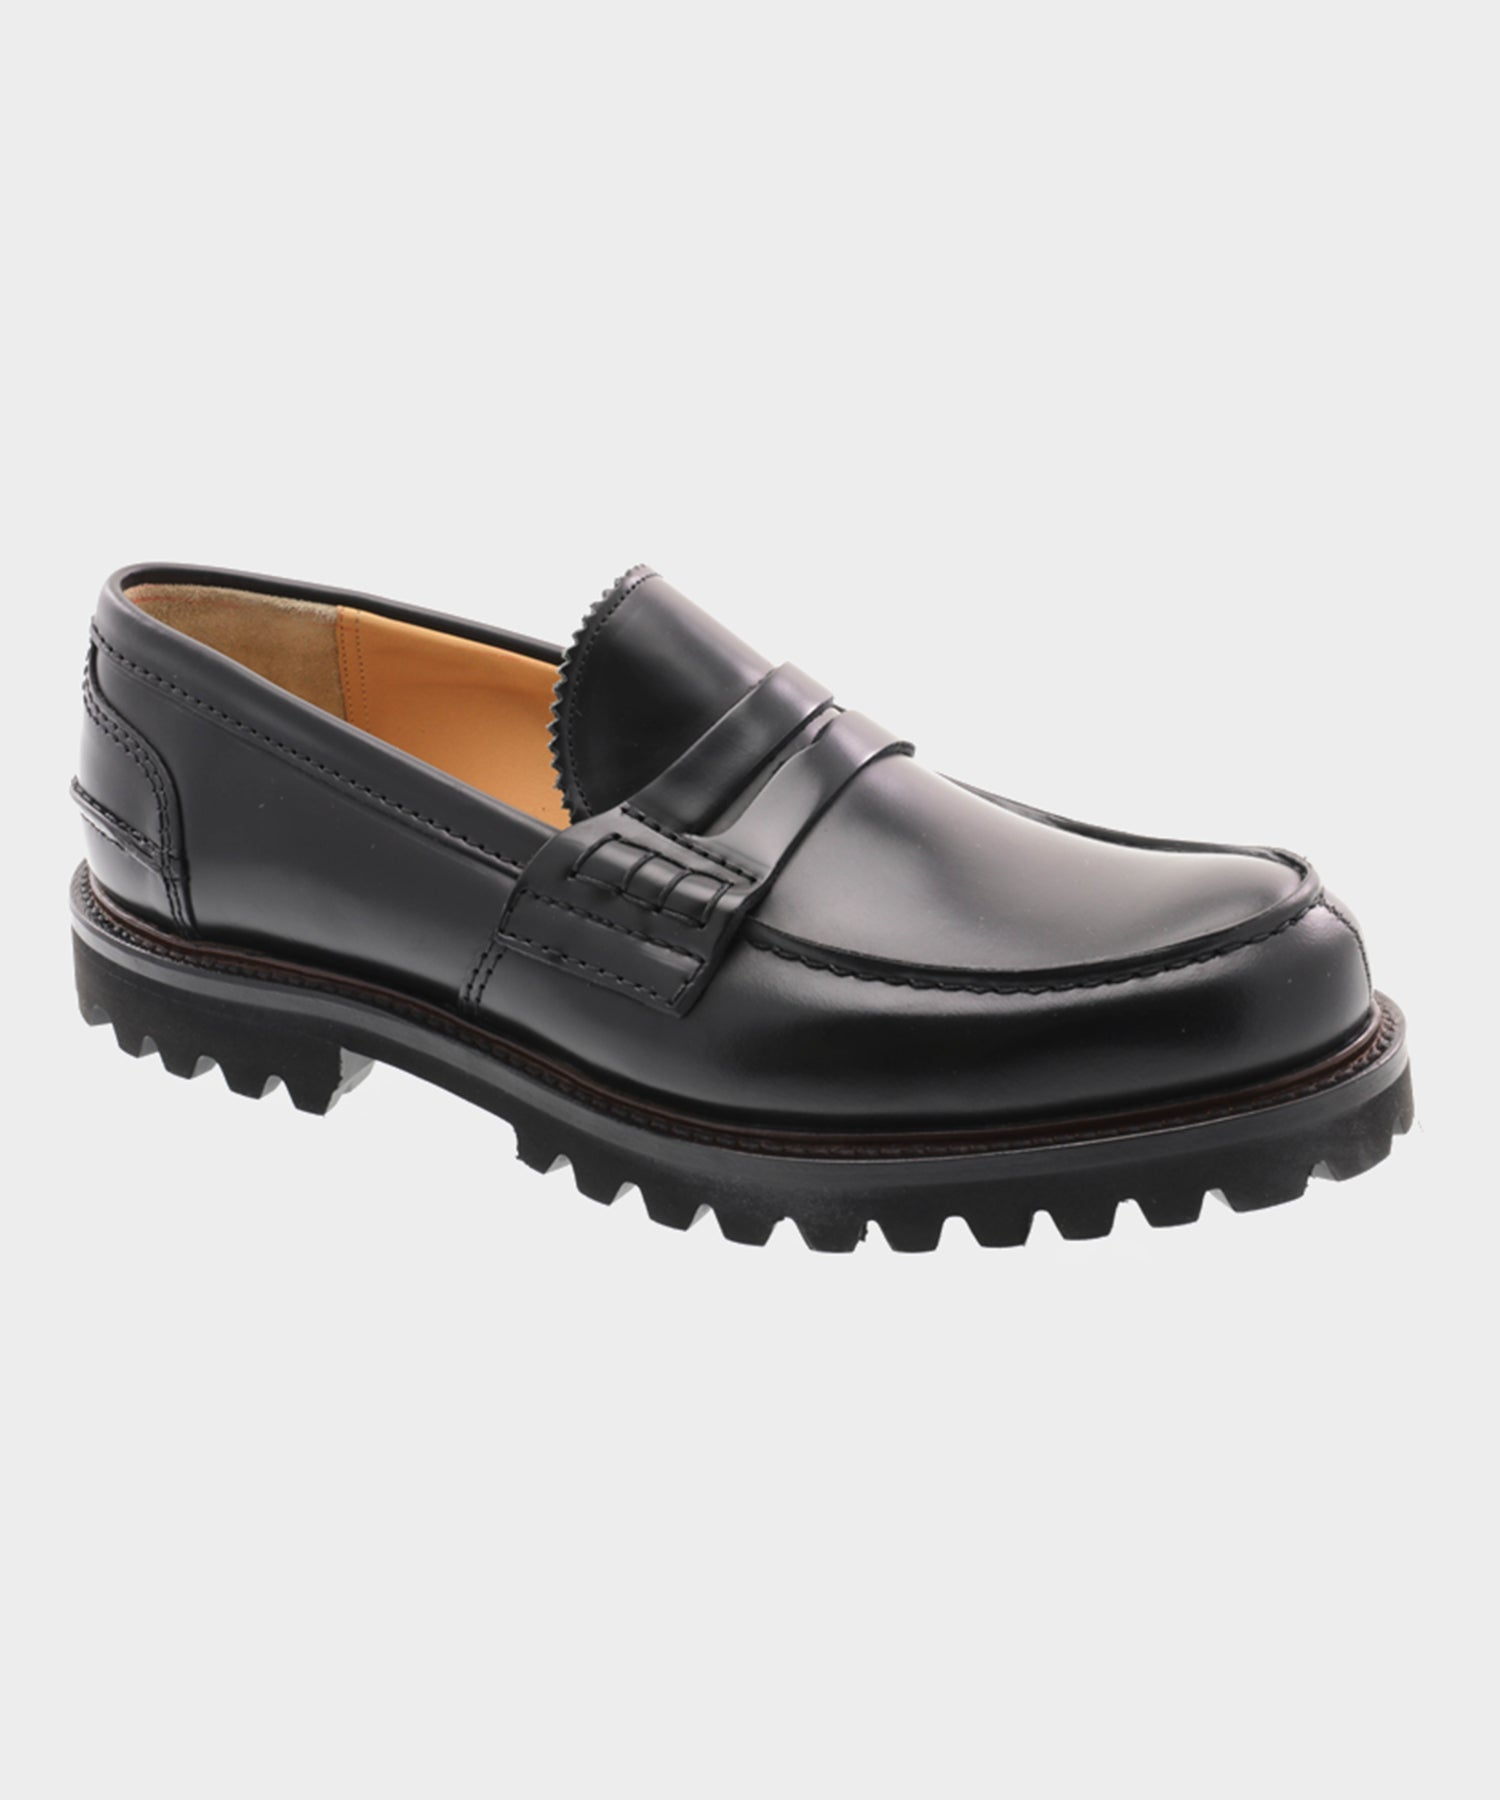 Church's Pembrey 5 Loafer in Black